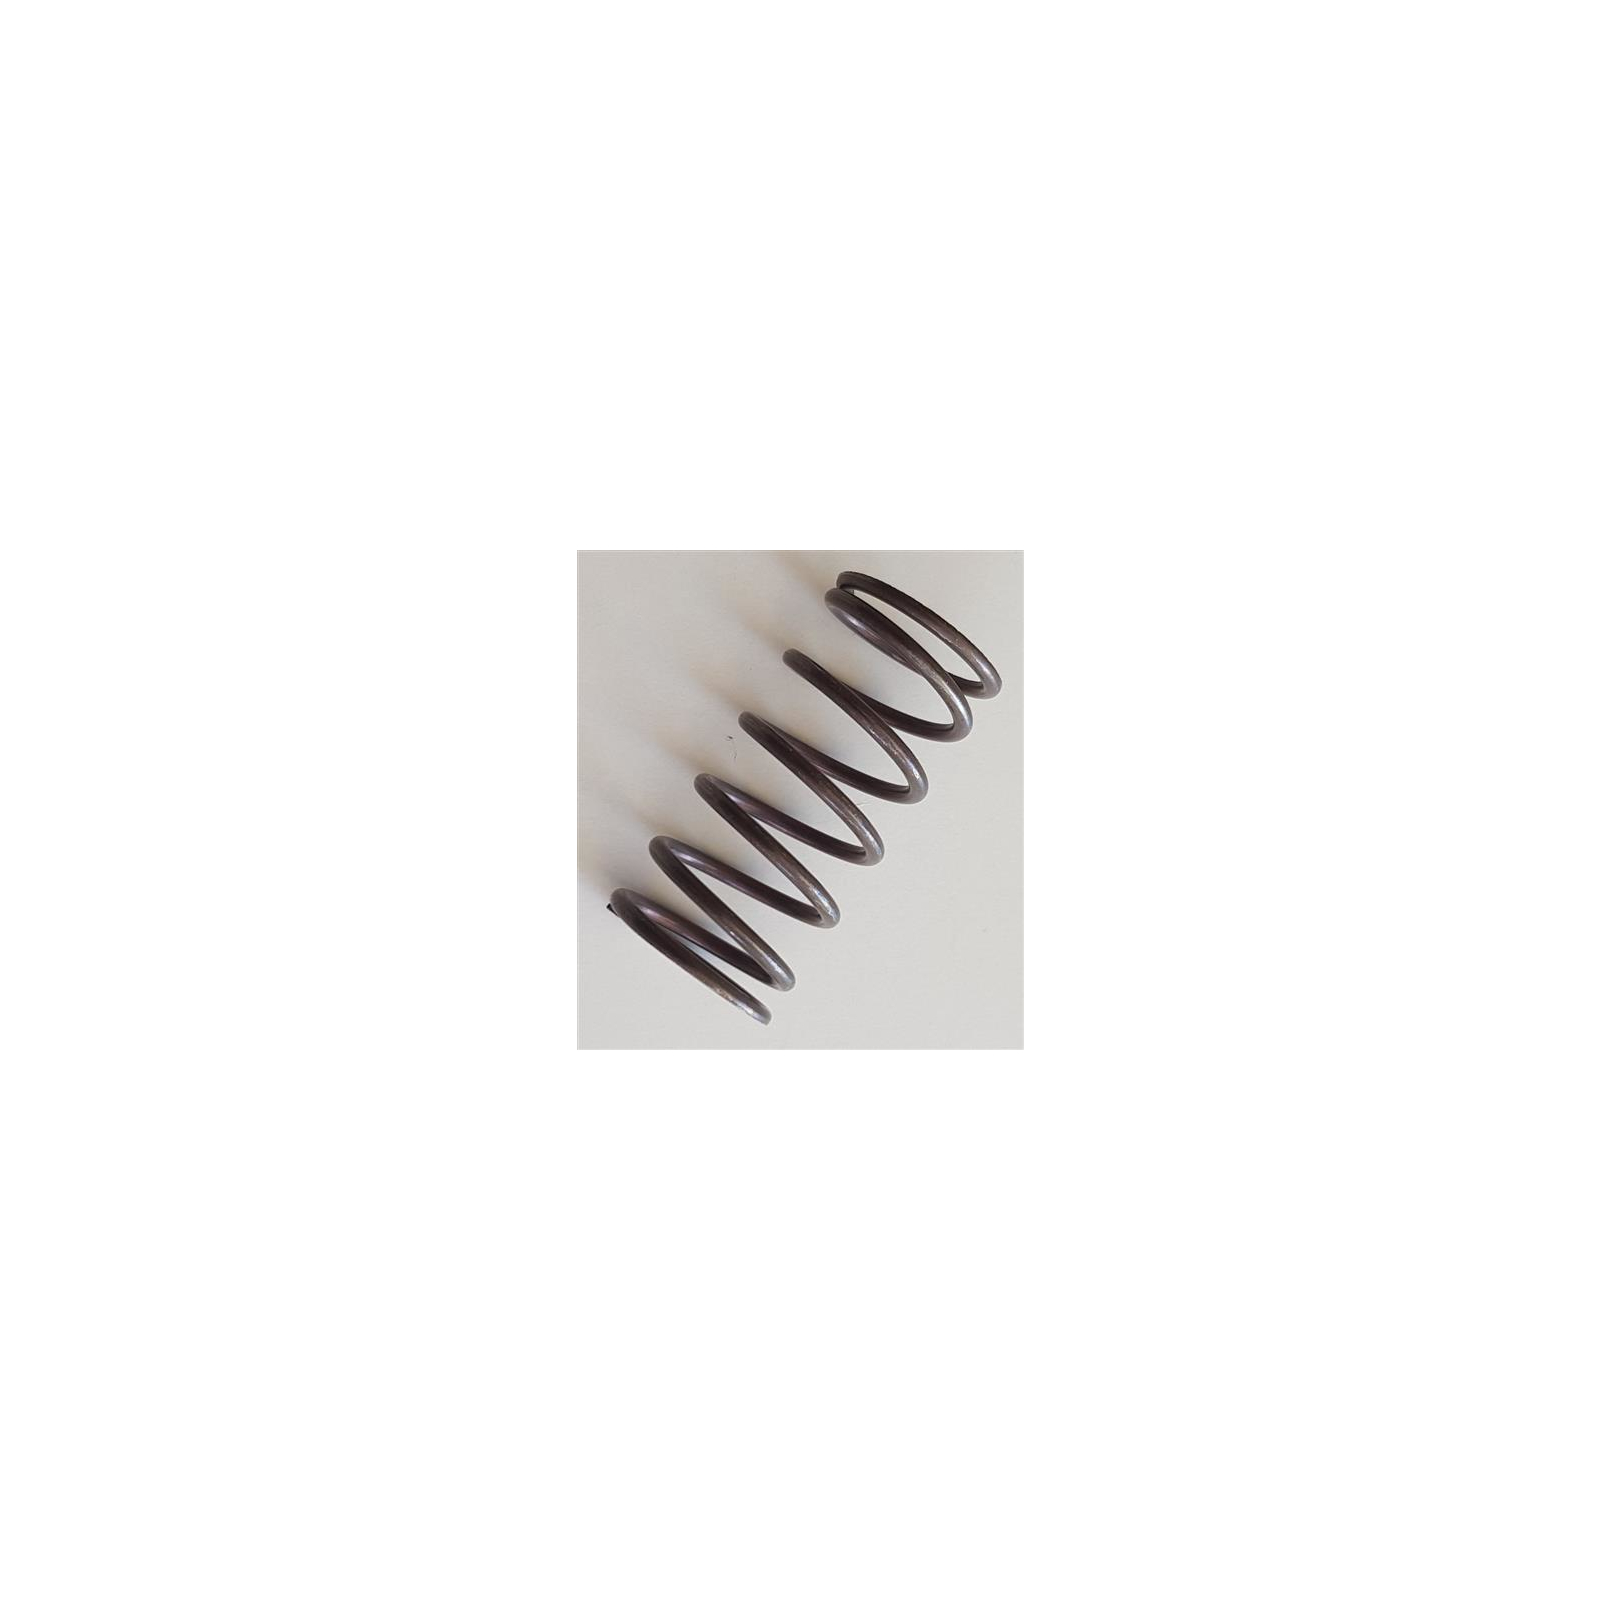 6DCT450 MPS6 Small Spring Clutch 08-up